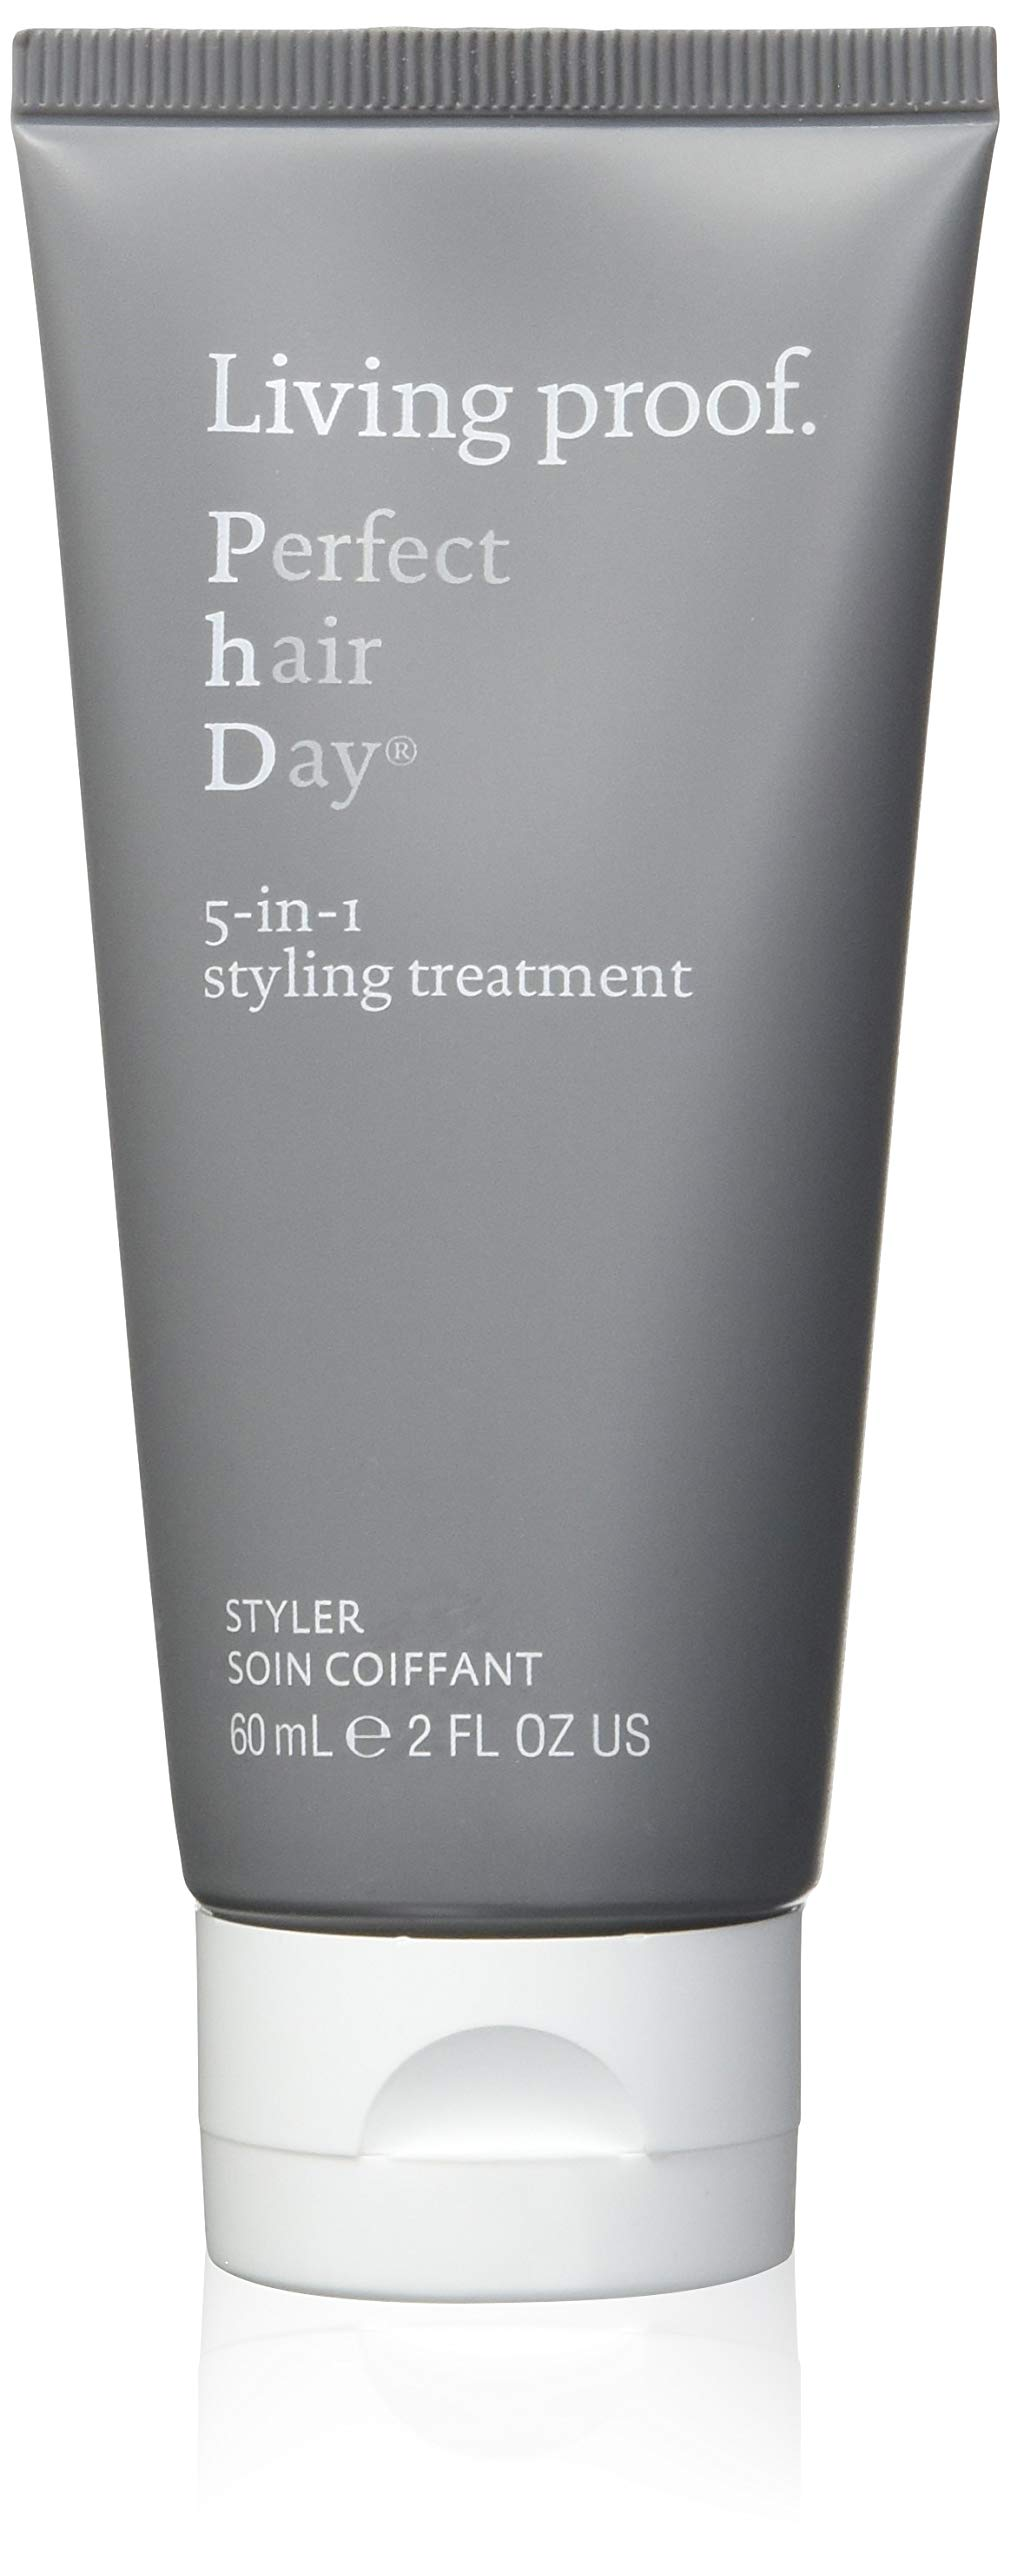 Living Proof Perfect Hair Day (phd) 5 In 1 Styling Treatment, 2.0 oz by Living Proof